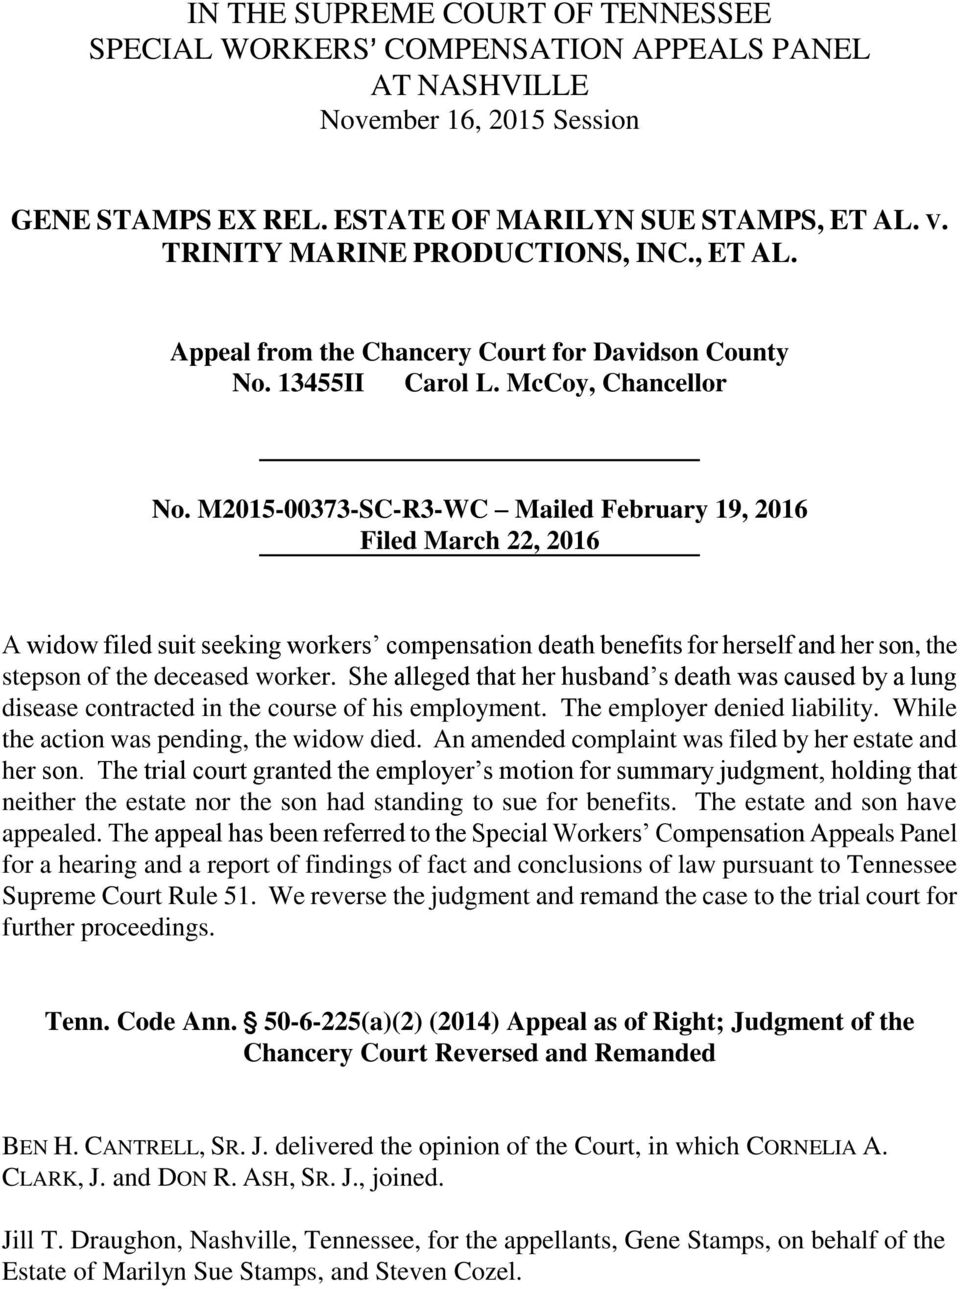 M2015-00373-SC-R3-WC Mailed February 19, 2016 Filed March 22, 2016 A widow filed suit seeking workers compensation death benefits for herself and her son, the stepson of the deceased worker.